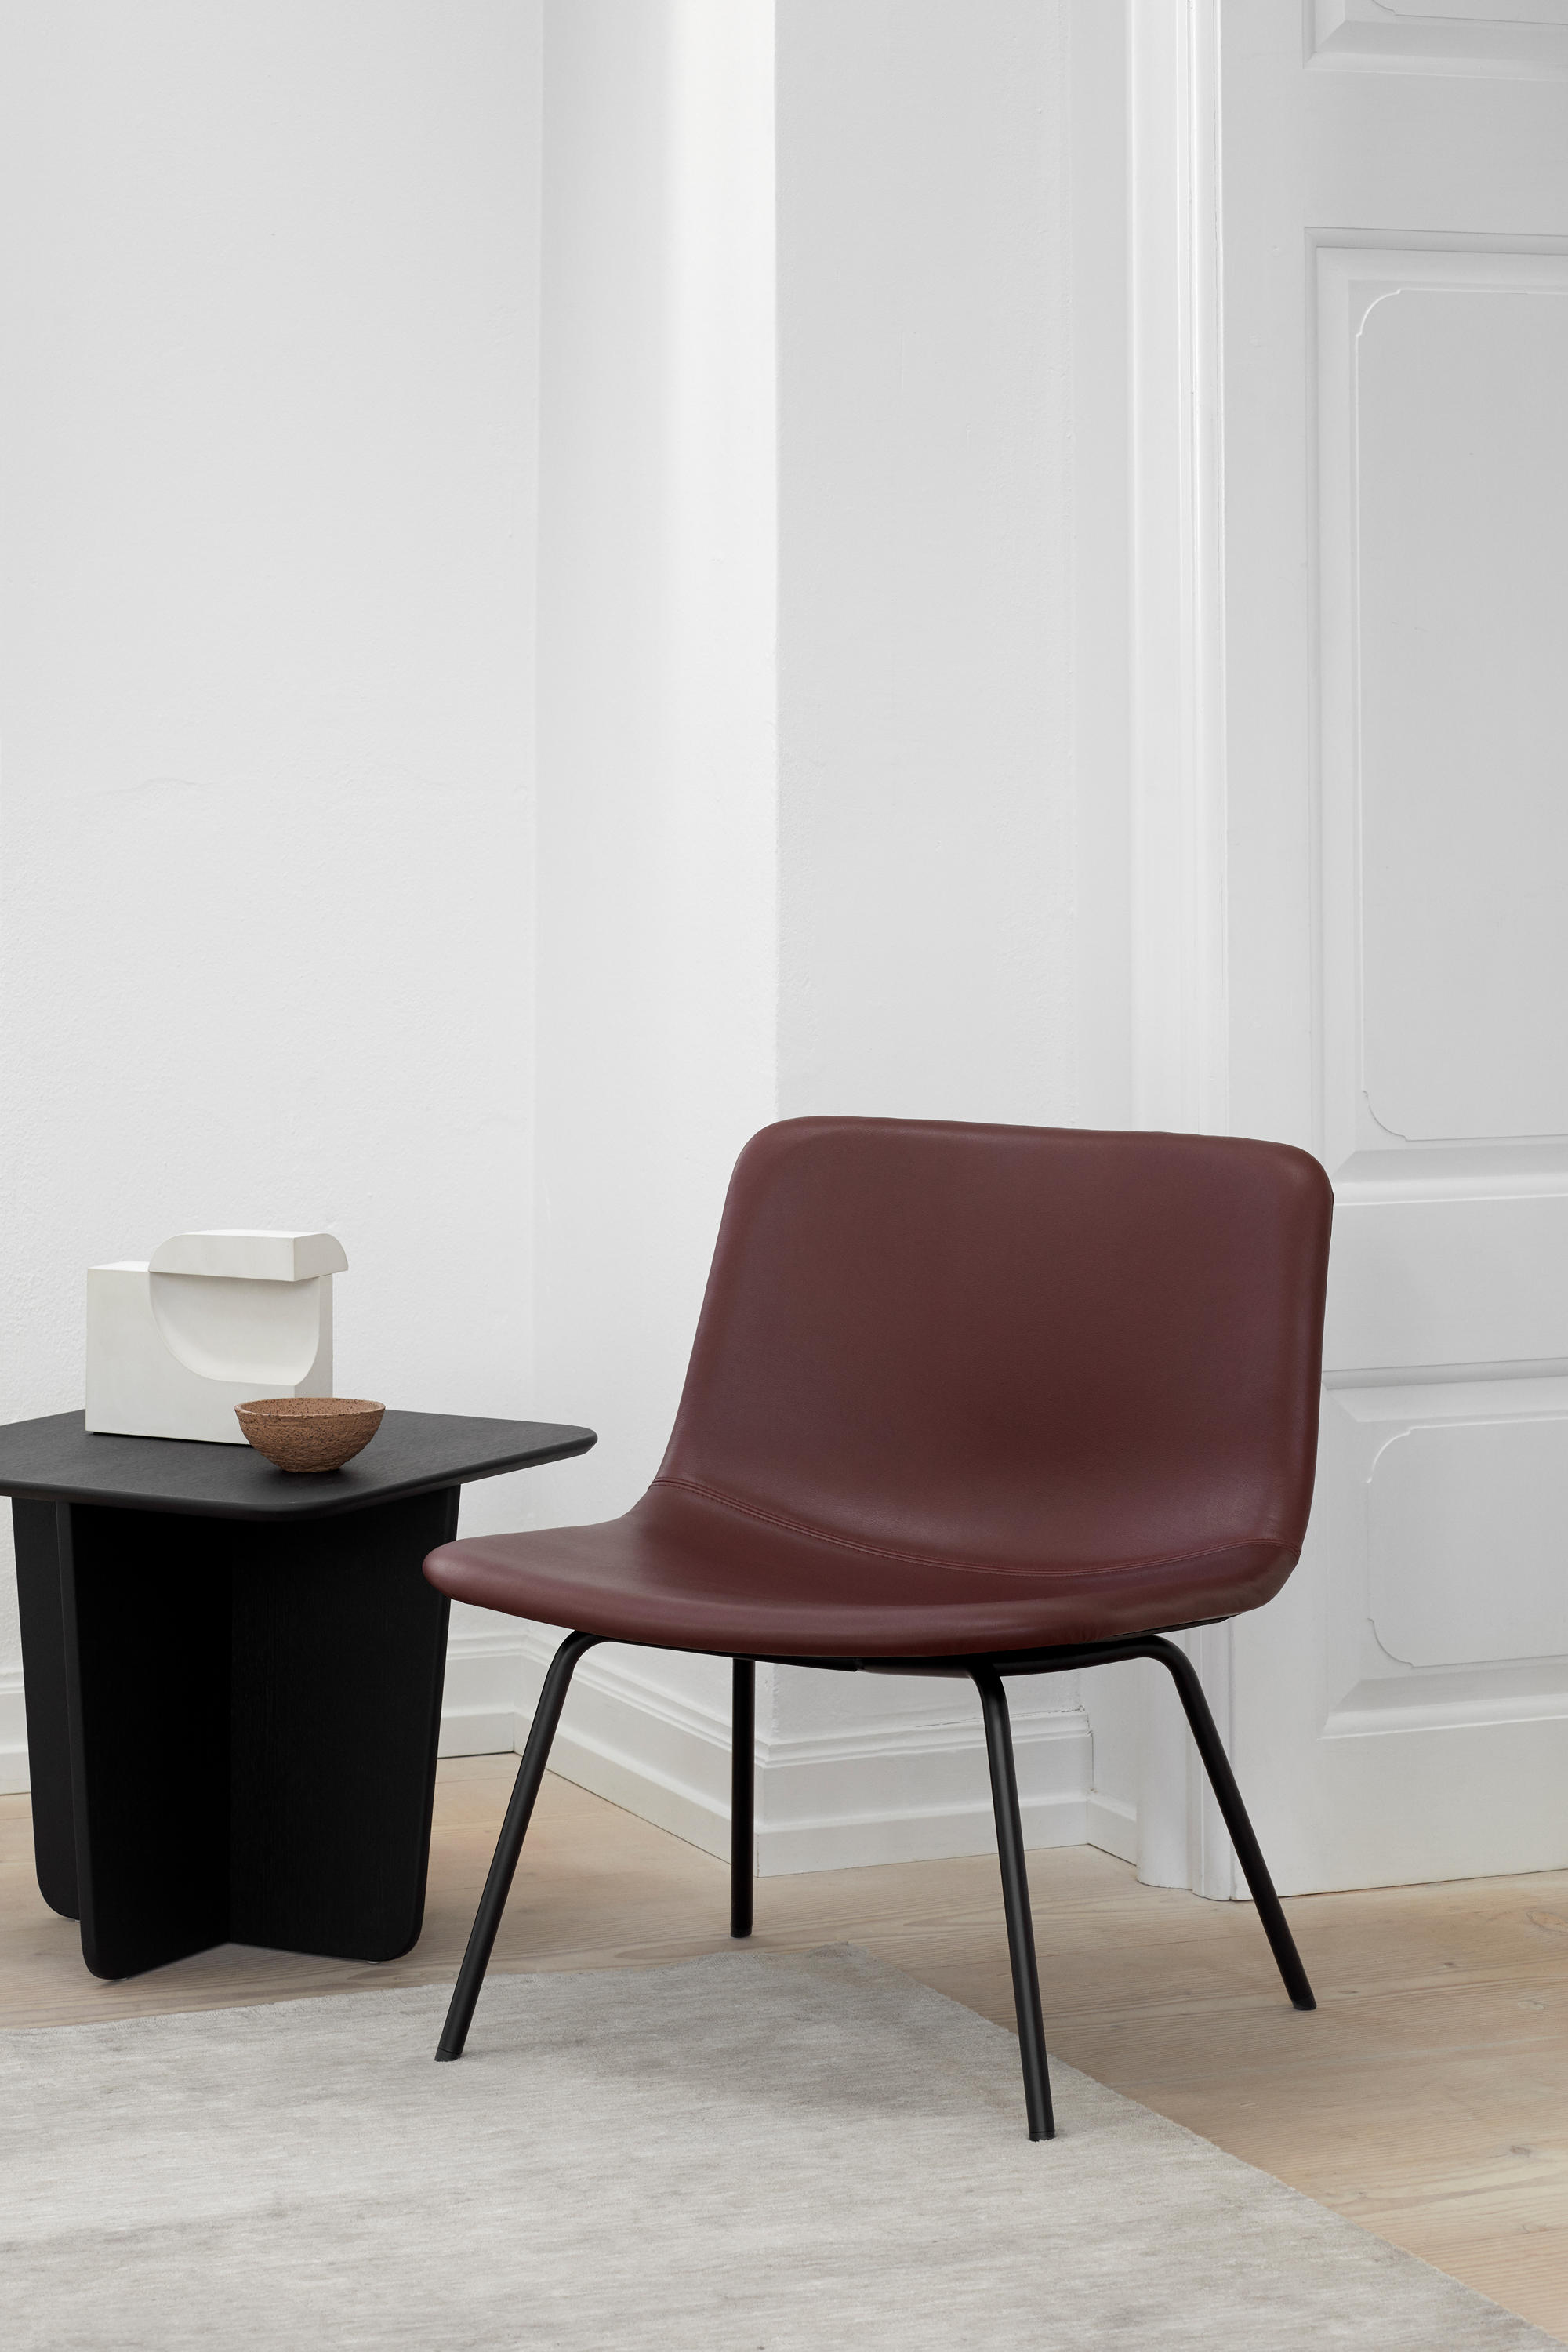 Pato 4 Leg Chairs From Fredericia Furniture Architonic